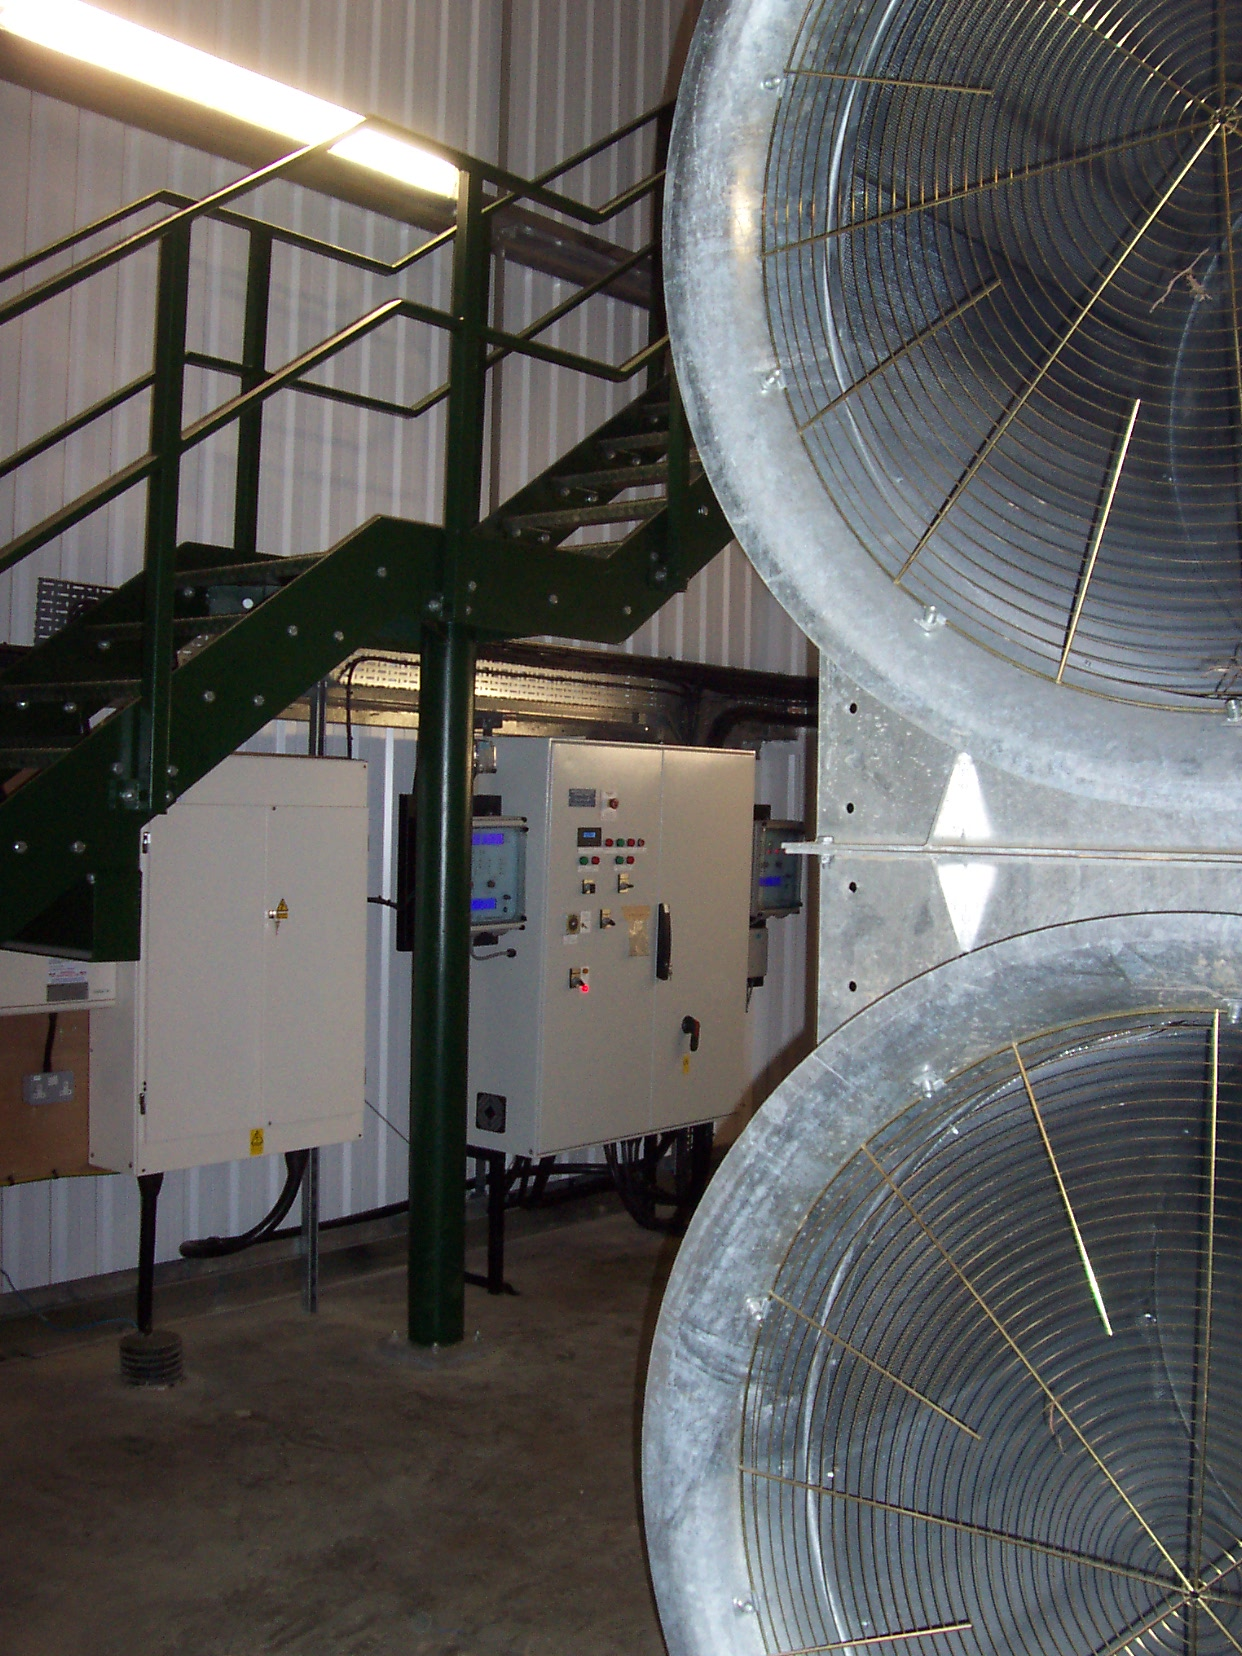 Large axial fans and controls for onion storage